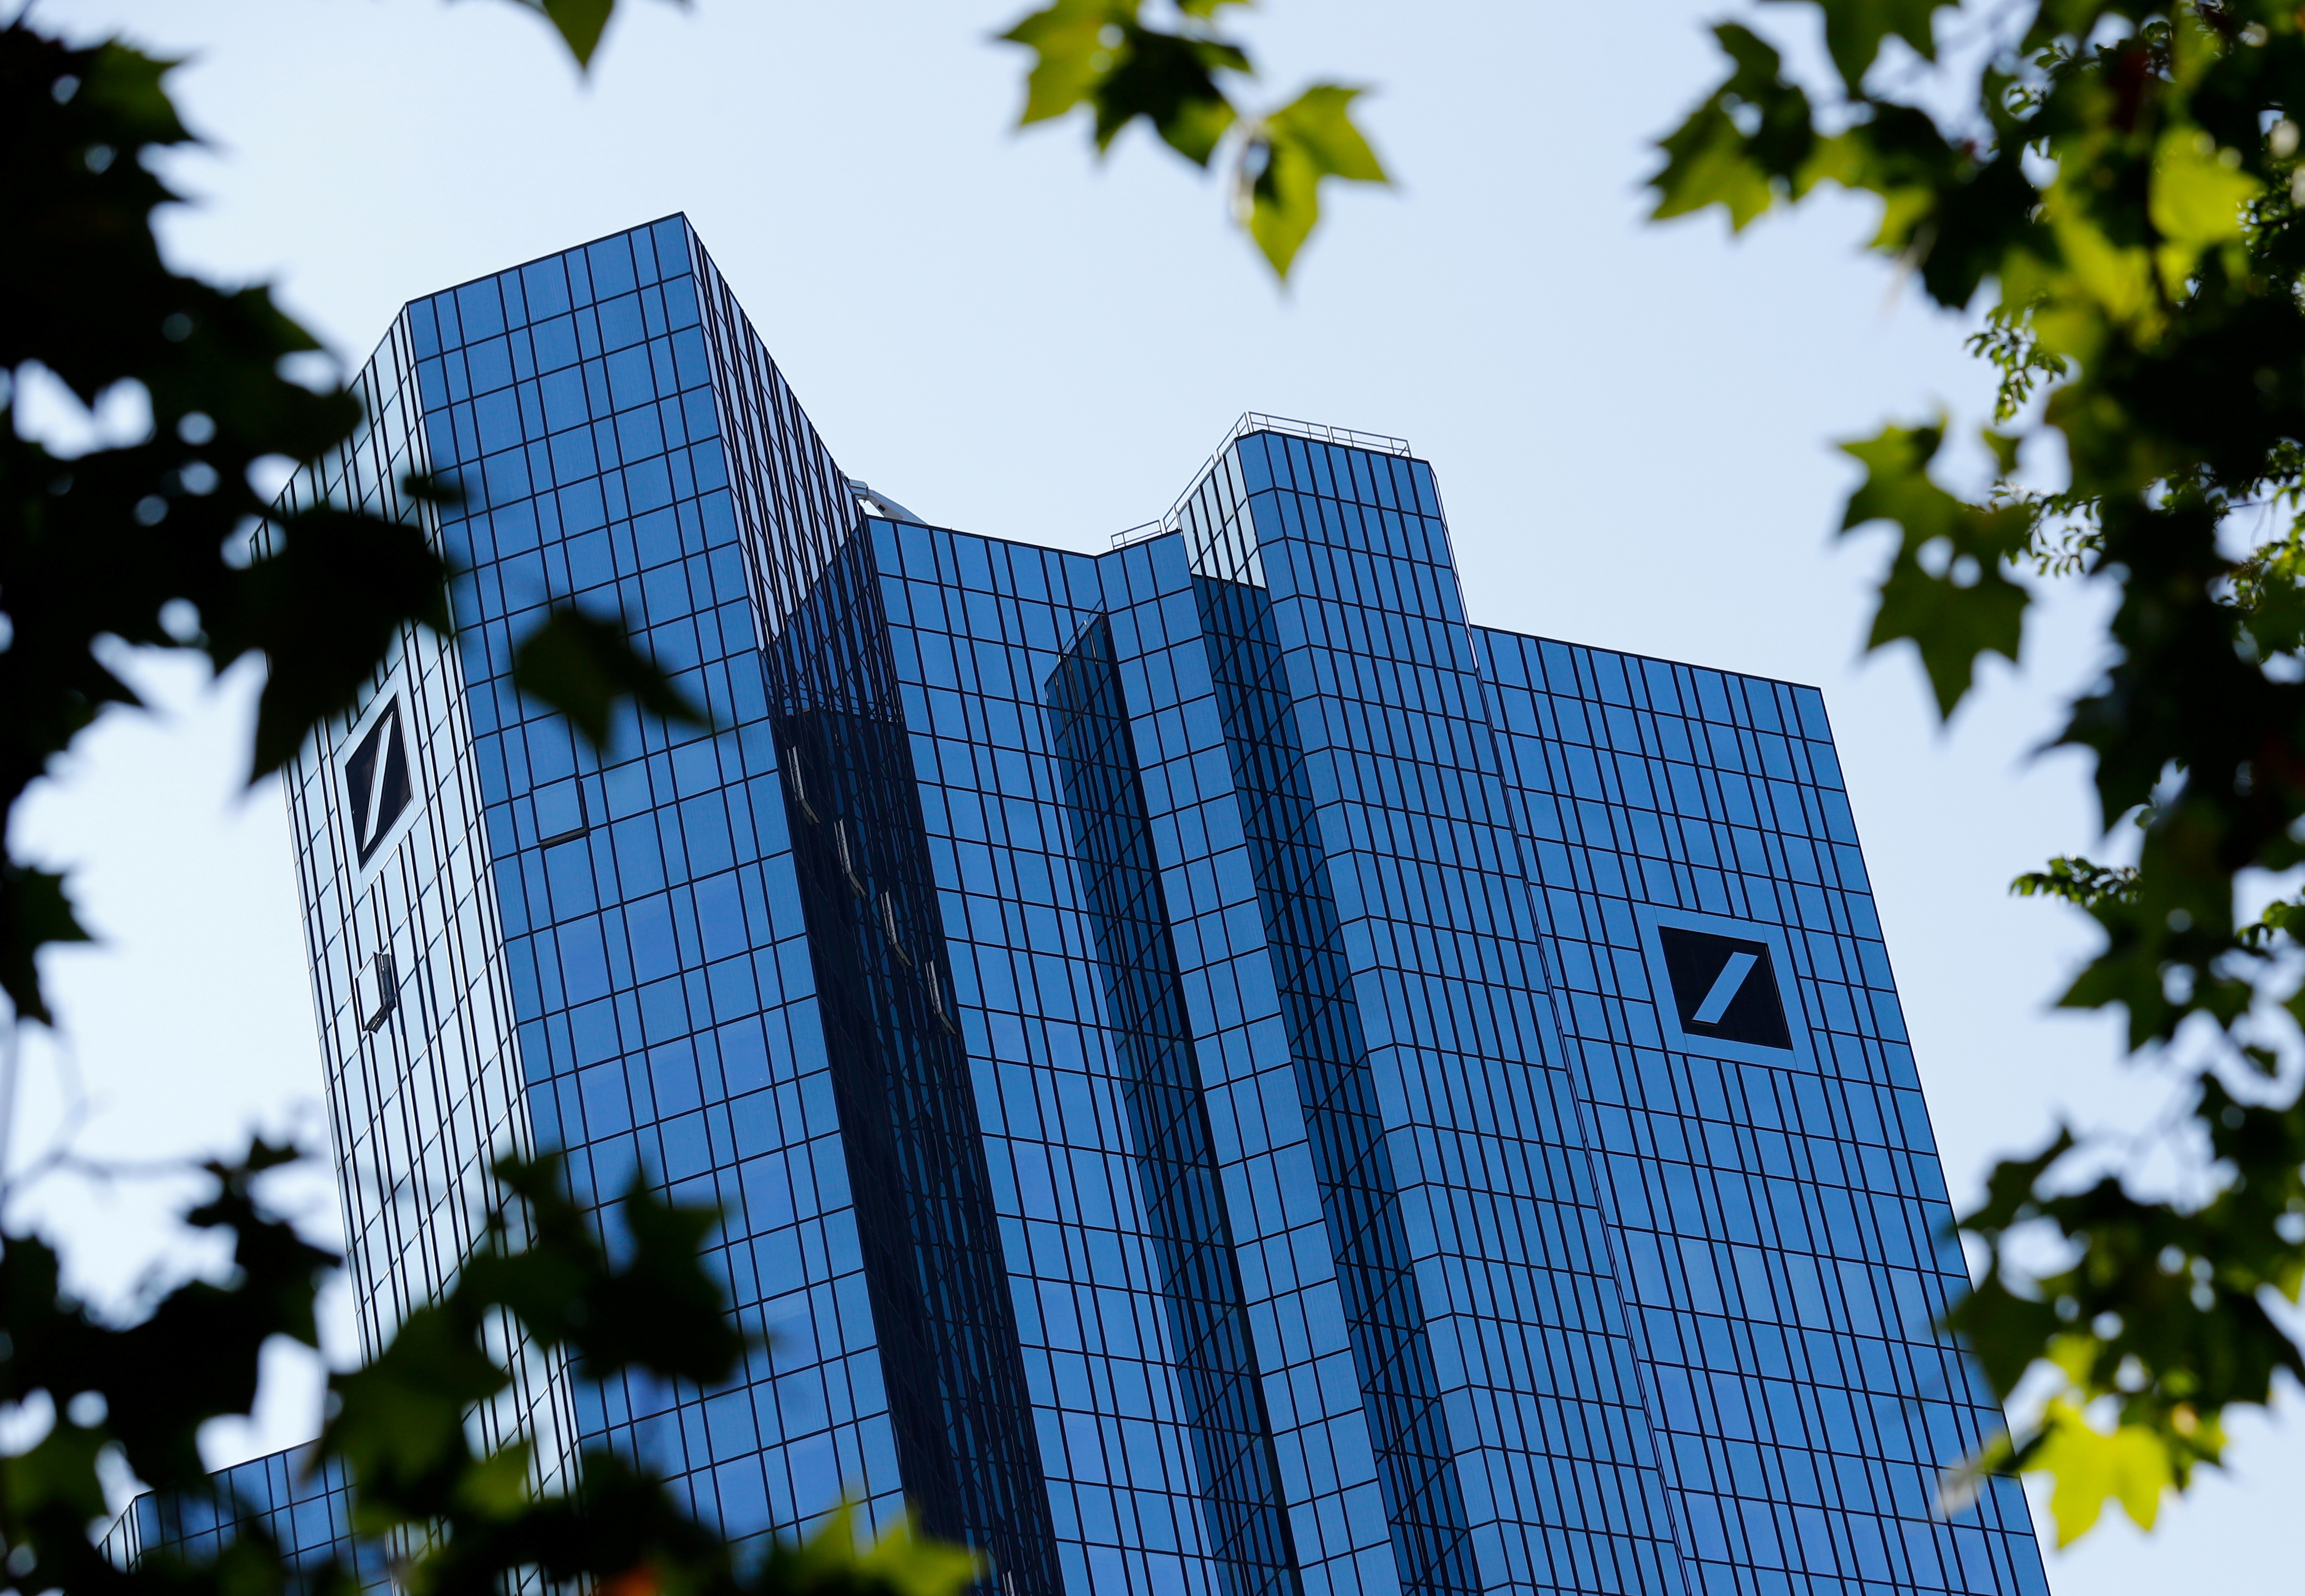 The headquarters of Germany's Deutsche Bank are pictured in Frankfurt, Germany, September 21, 2020. REUTERS/Ralph Orlowski/File Photo